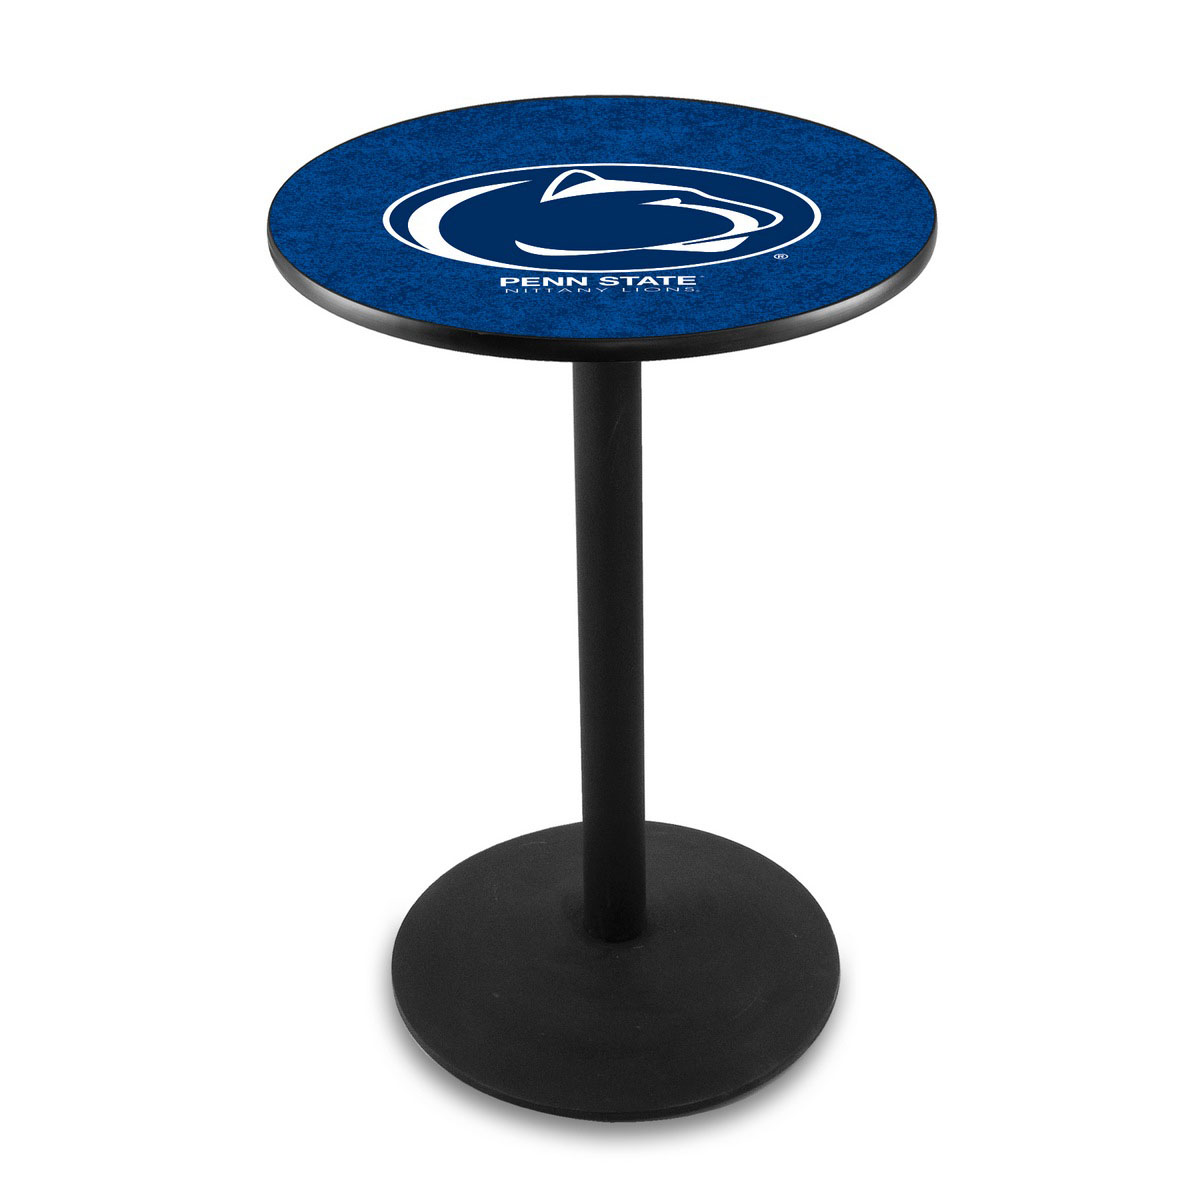 Trustworthy Pennsylvania State University Logo Pub Bar Table Round Stand Product Photo